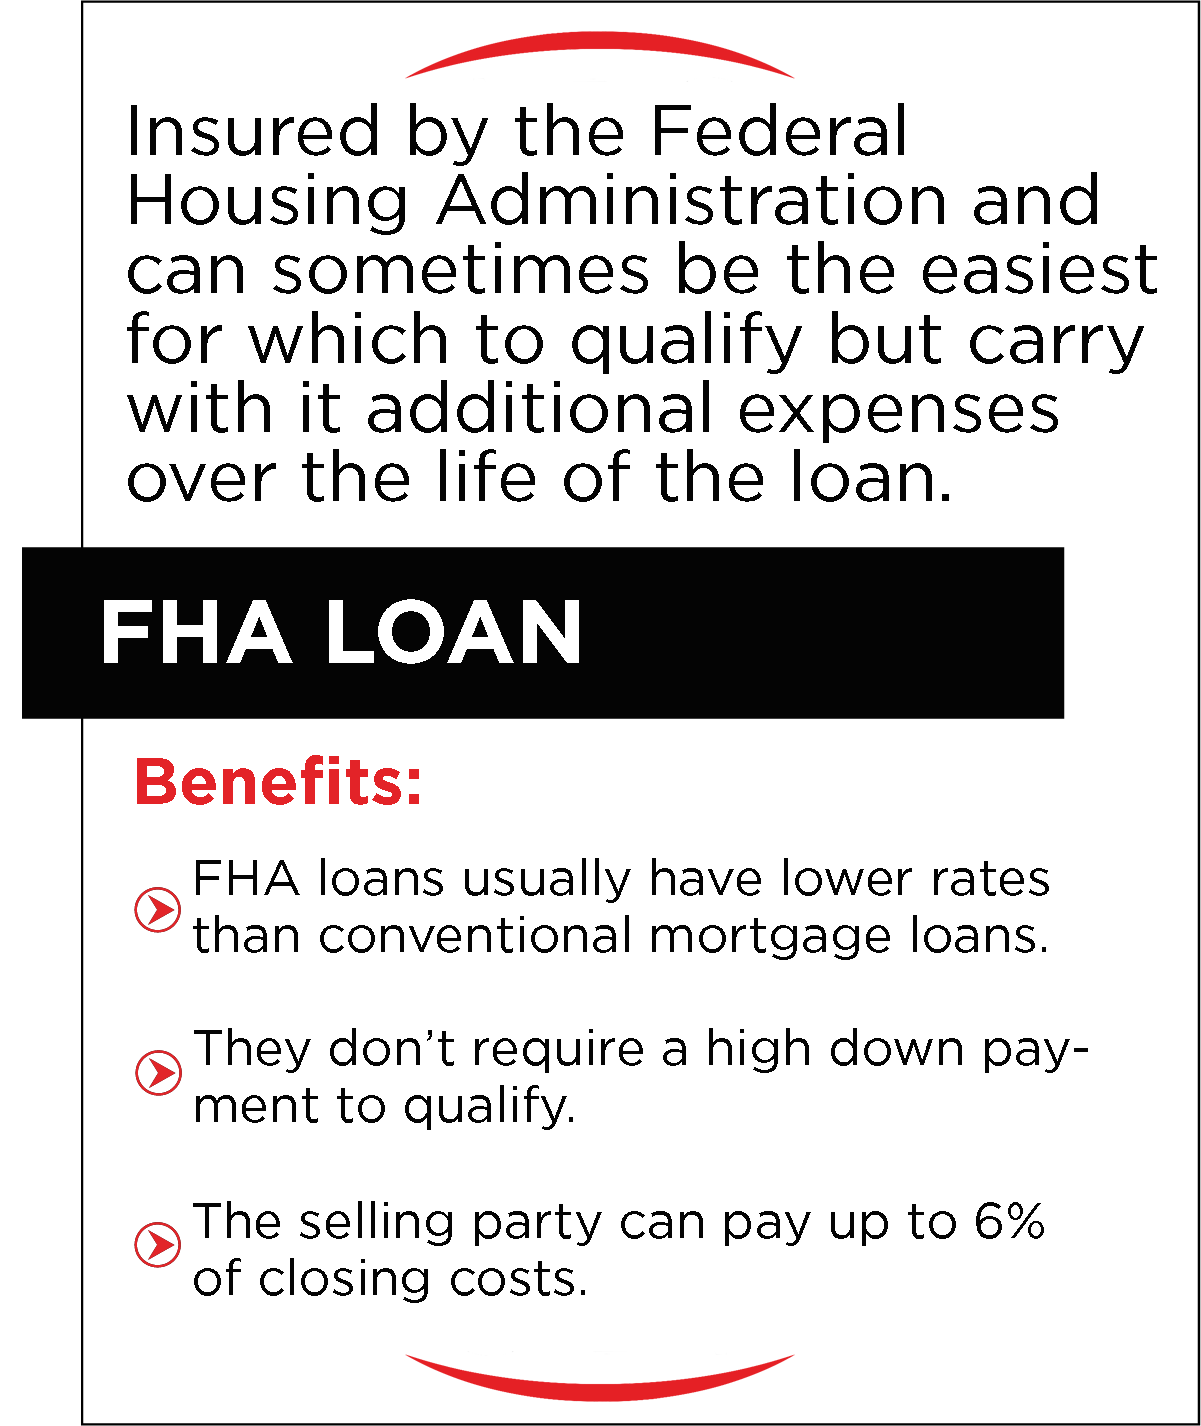 FHA Loan infographic